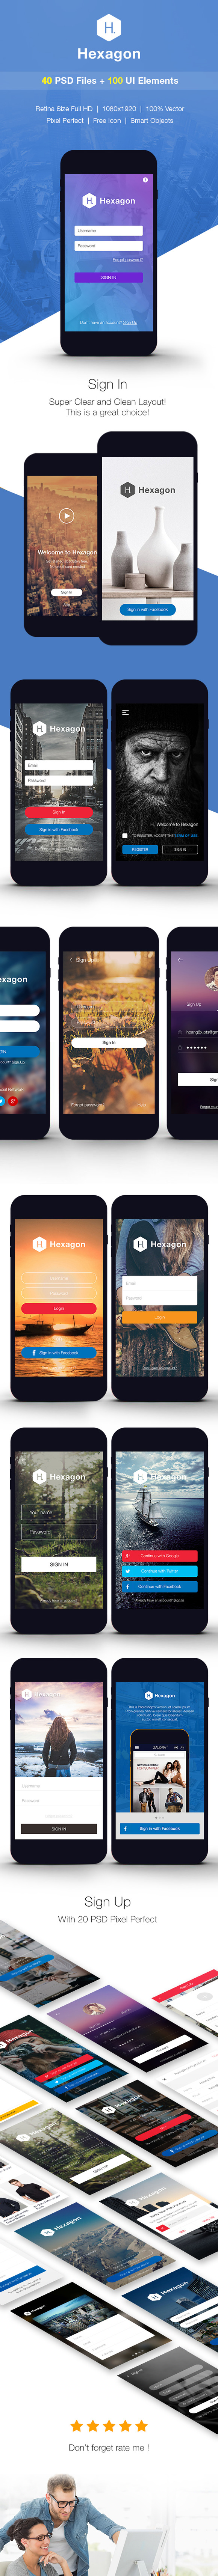 SignUp Login Mobile Form UI Kit